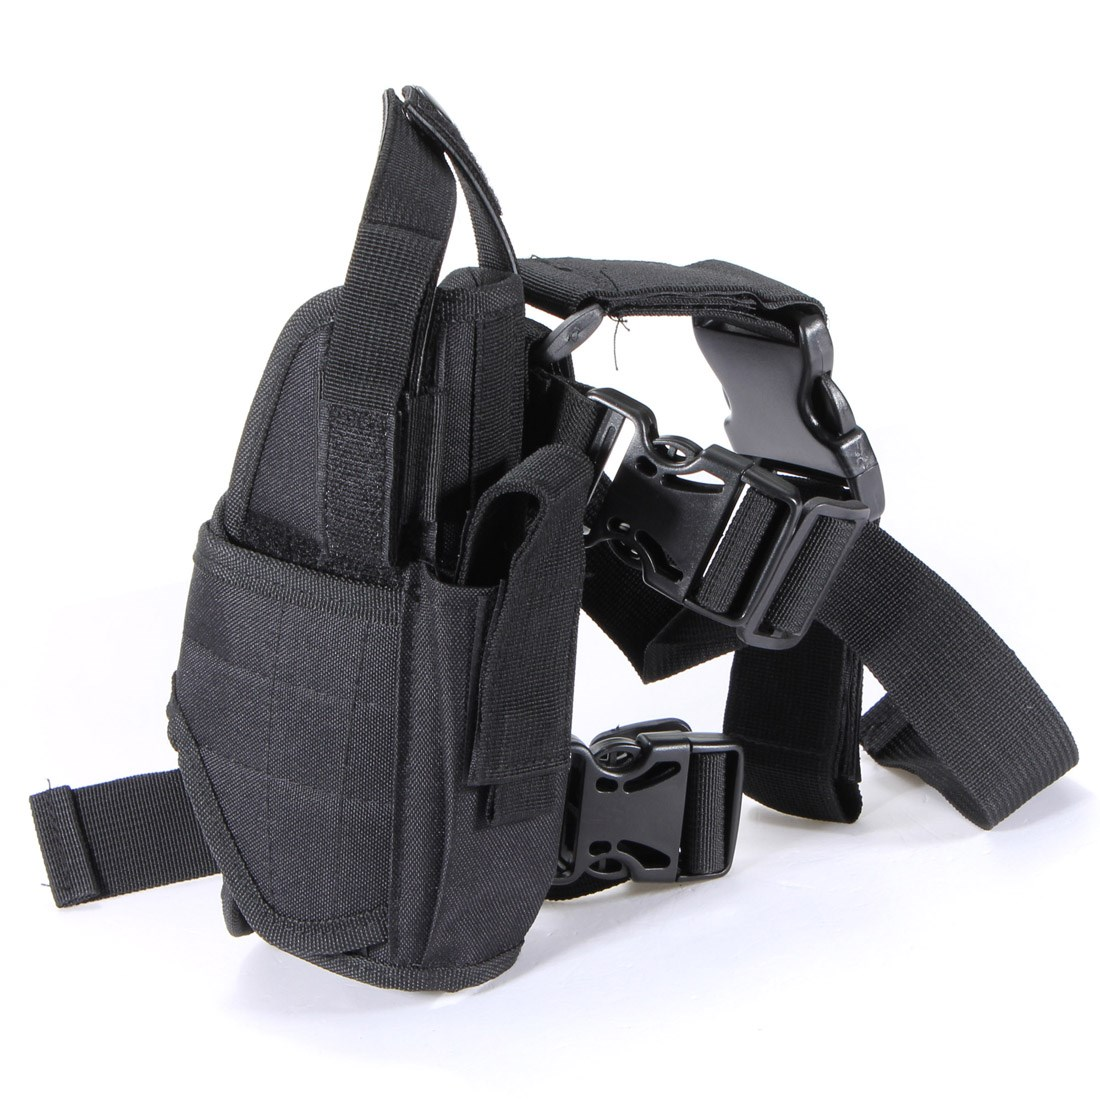 Hot Sale Outdoor Hunting Waterproof Military Tactical Adjustable Puttee Thigh Leg Pistol Gun Holster Pouch Quick Release Buckle(China (Mainland))